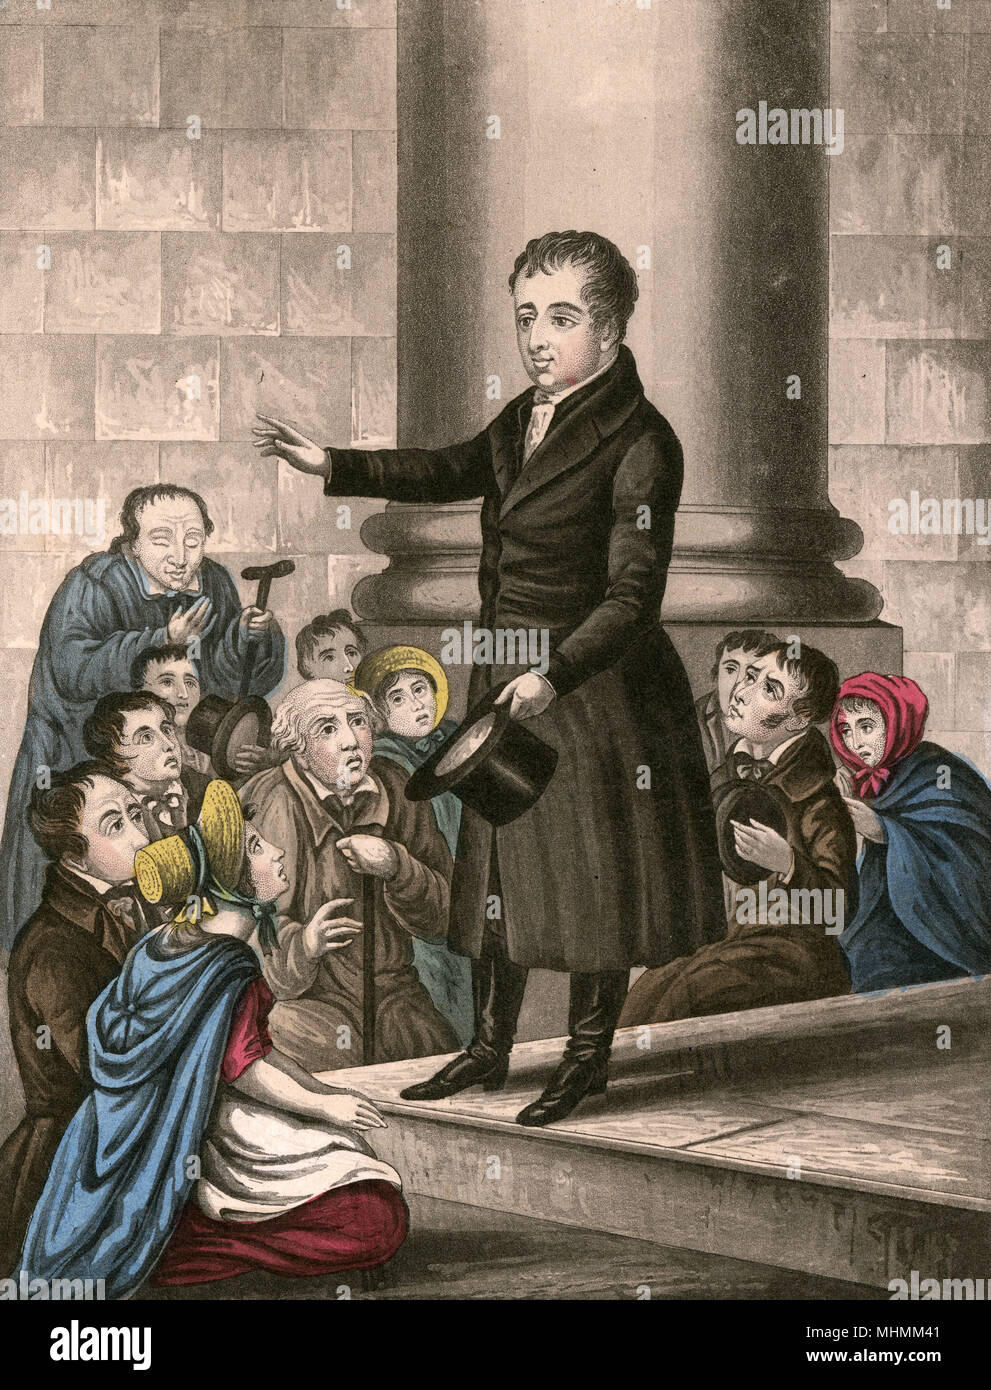 The Very Reverend Theobald Mathew administers the temperance pledge to churchgoers.      Date: circa 1840 - Stock Image